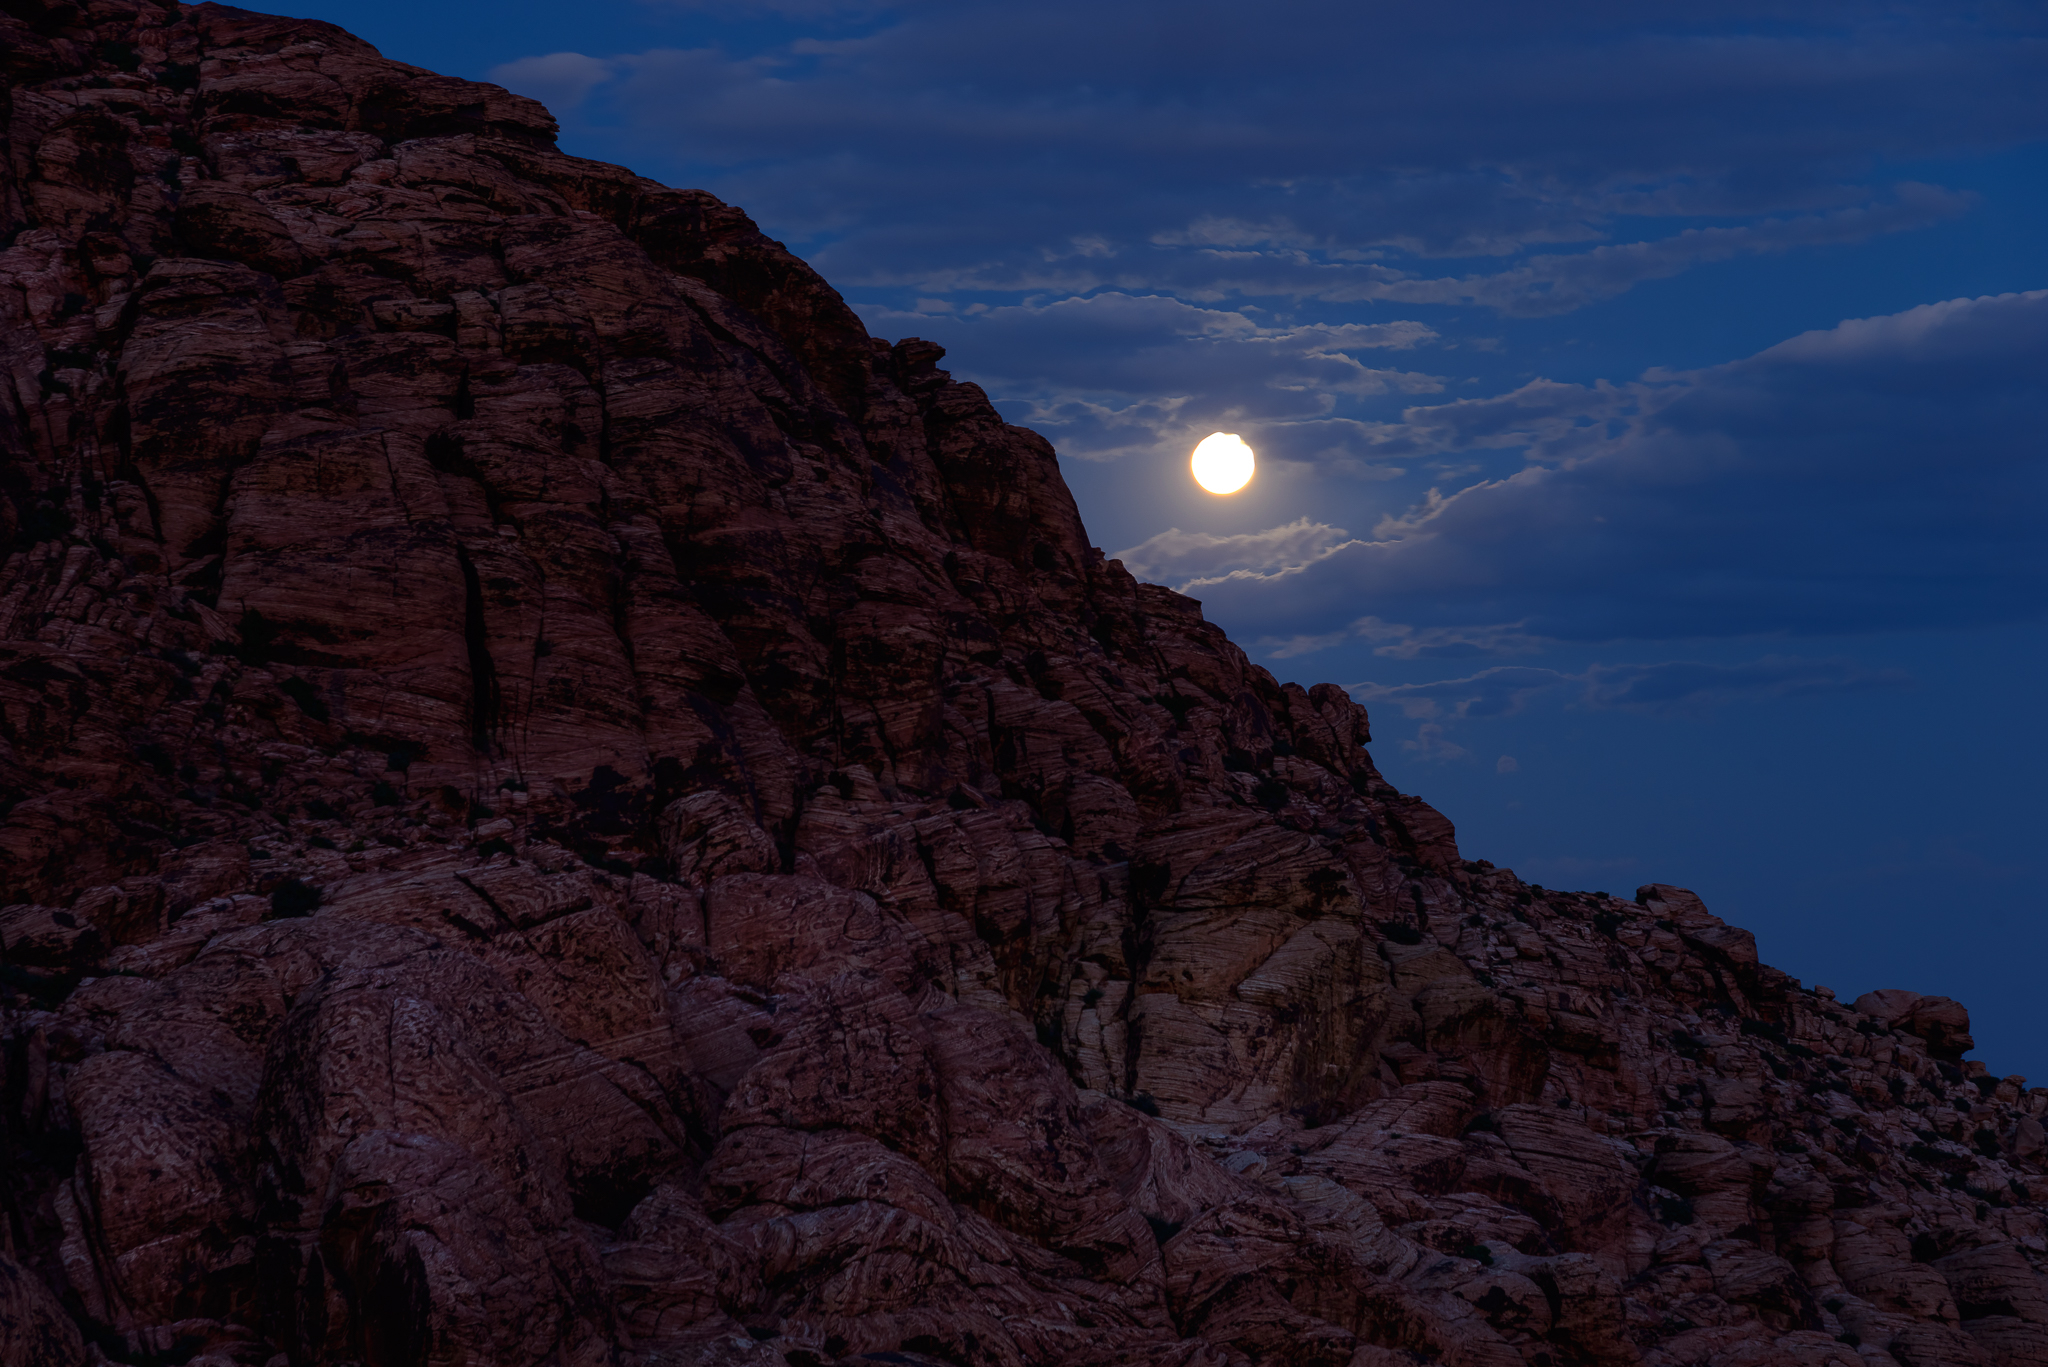 Oh hey moon! A pleasant peak at the full moon rising. Red Rock National Conservation Area, NV.